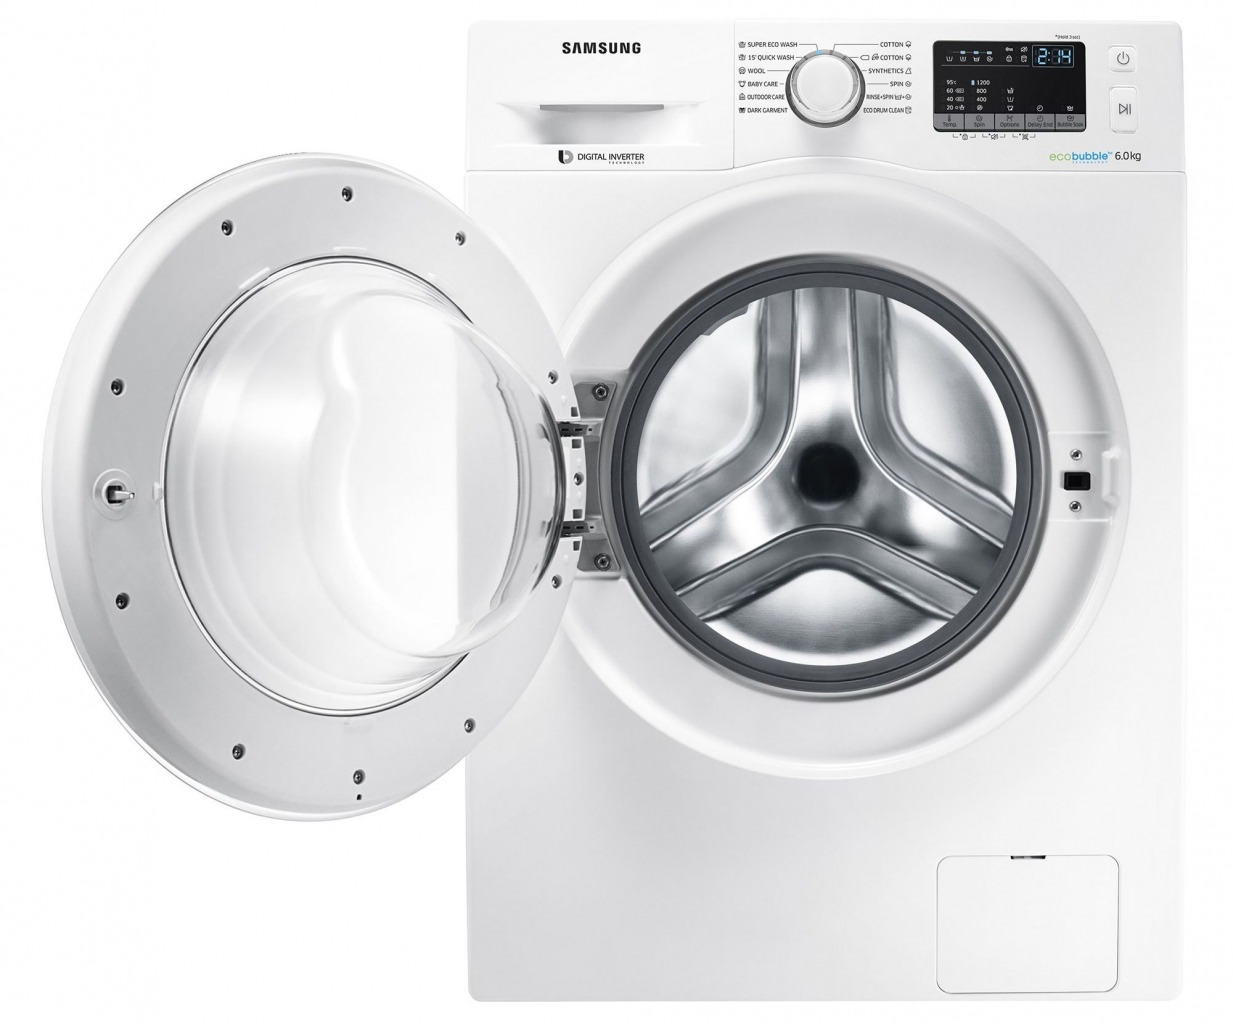 samsung eco bubble ww60j4210lw le_2.jpg